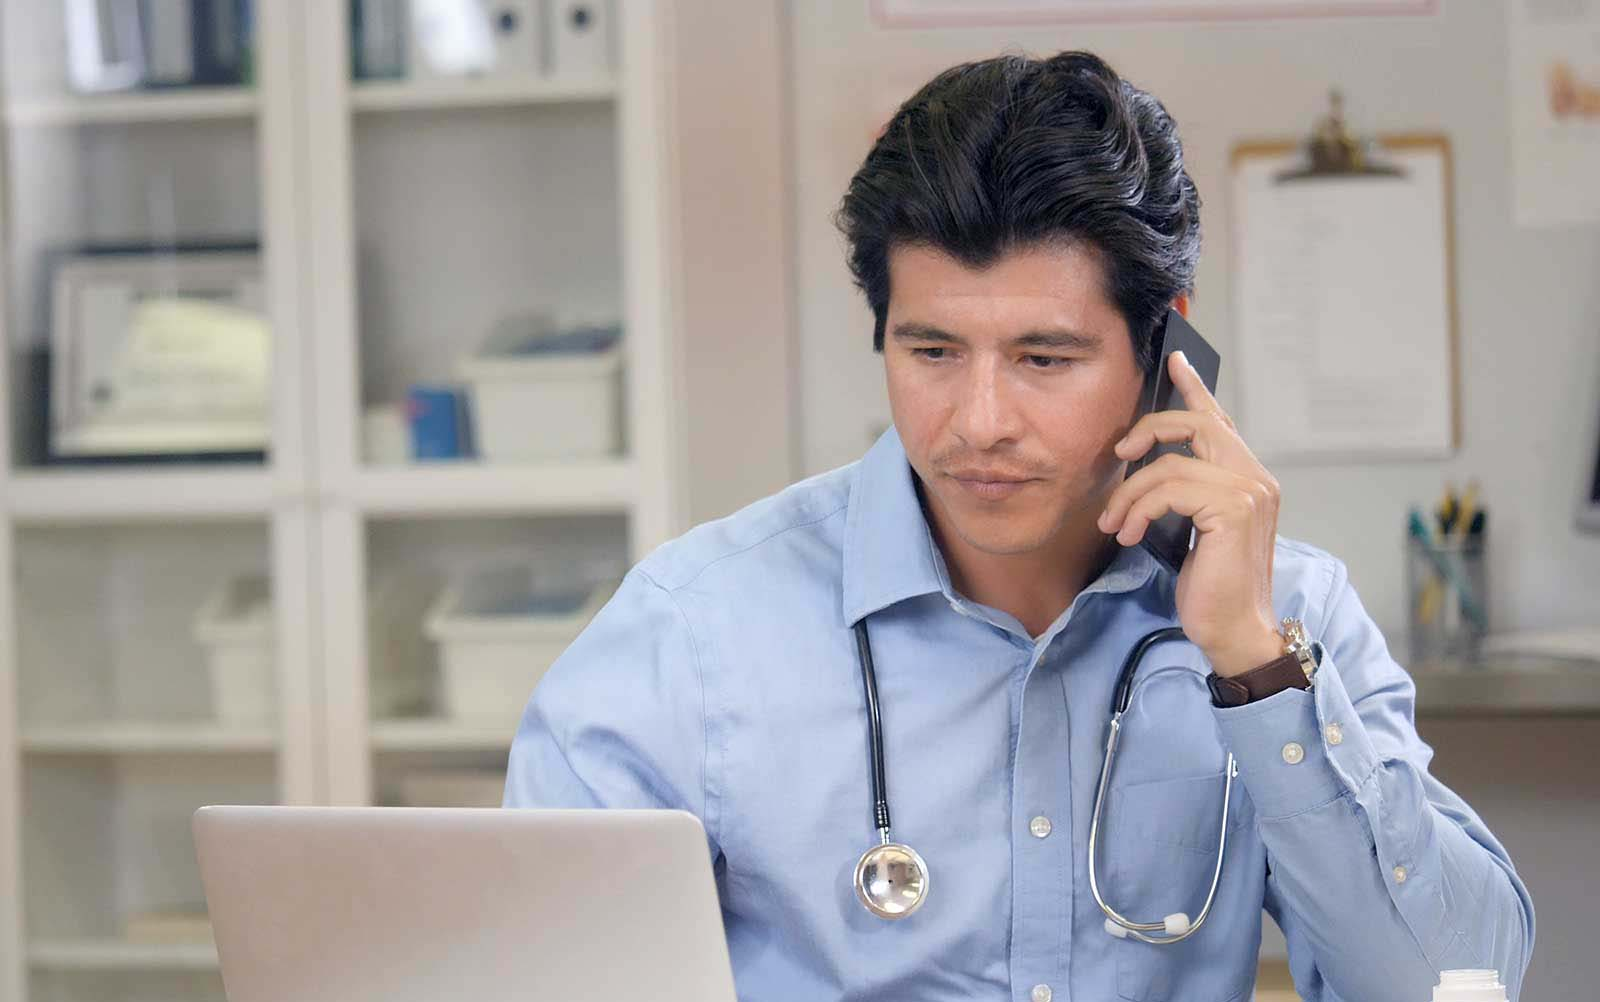 Male doctor on phone potentially with chiropractor and looking at computer